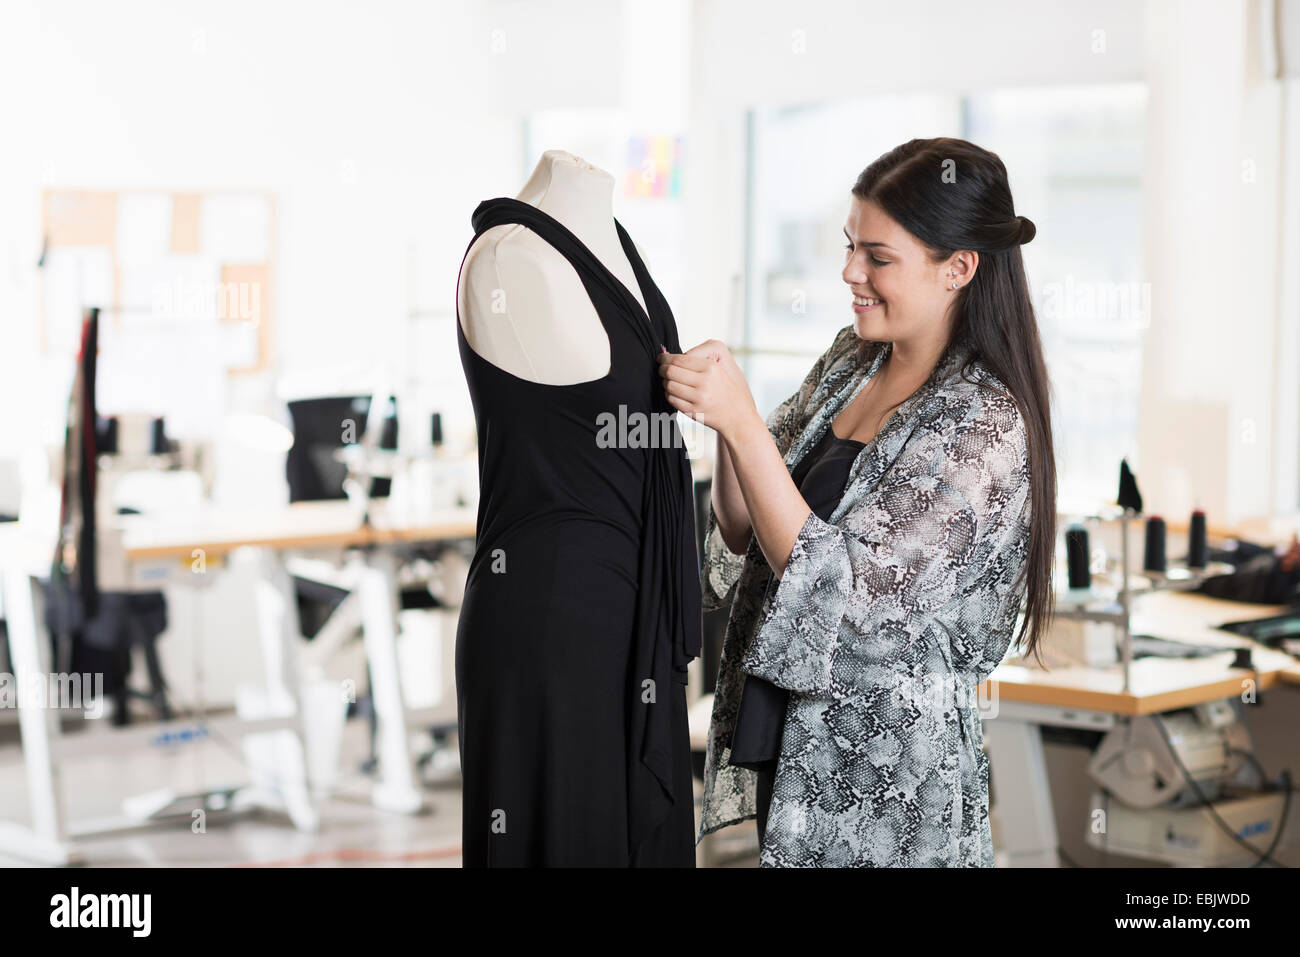 Young seamstress fitting dress on tailors dummy in workshop - Stock Image